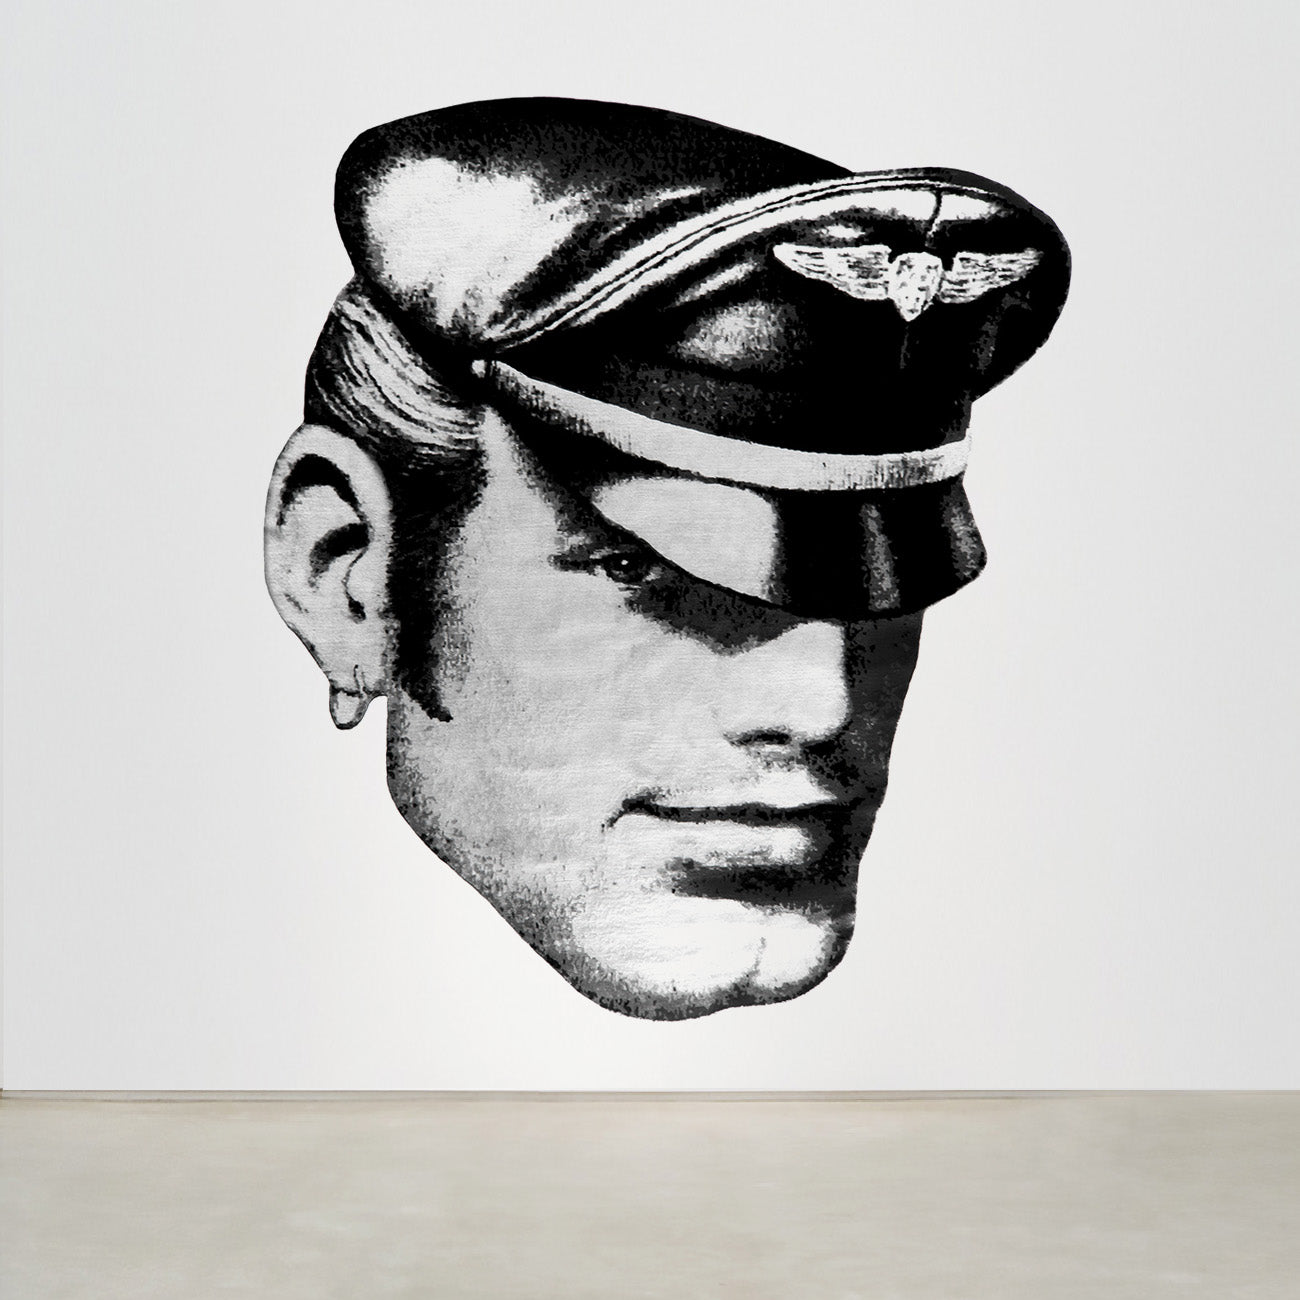 TOM OF FINLAND, UNTITLED, 1978 (0001)